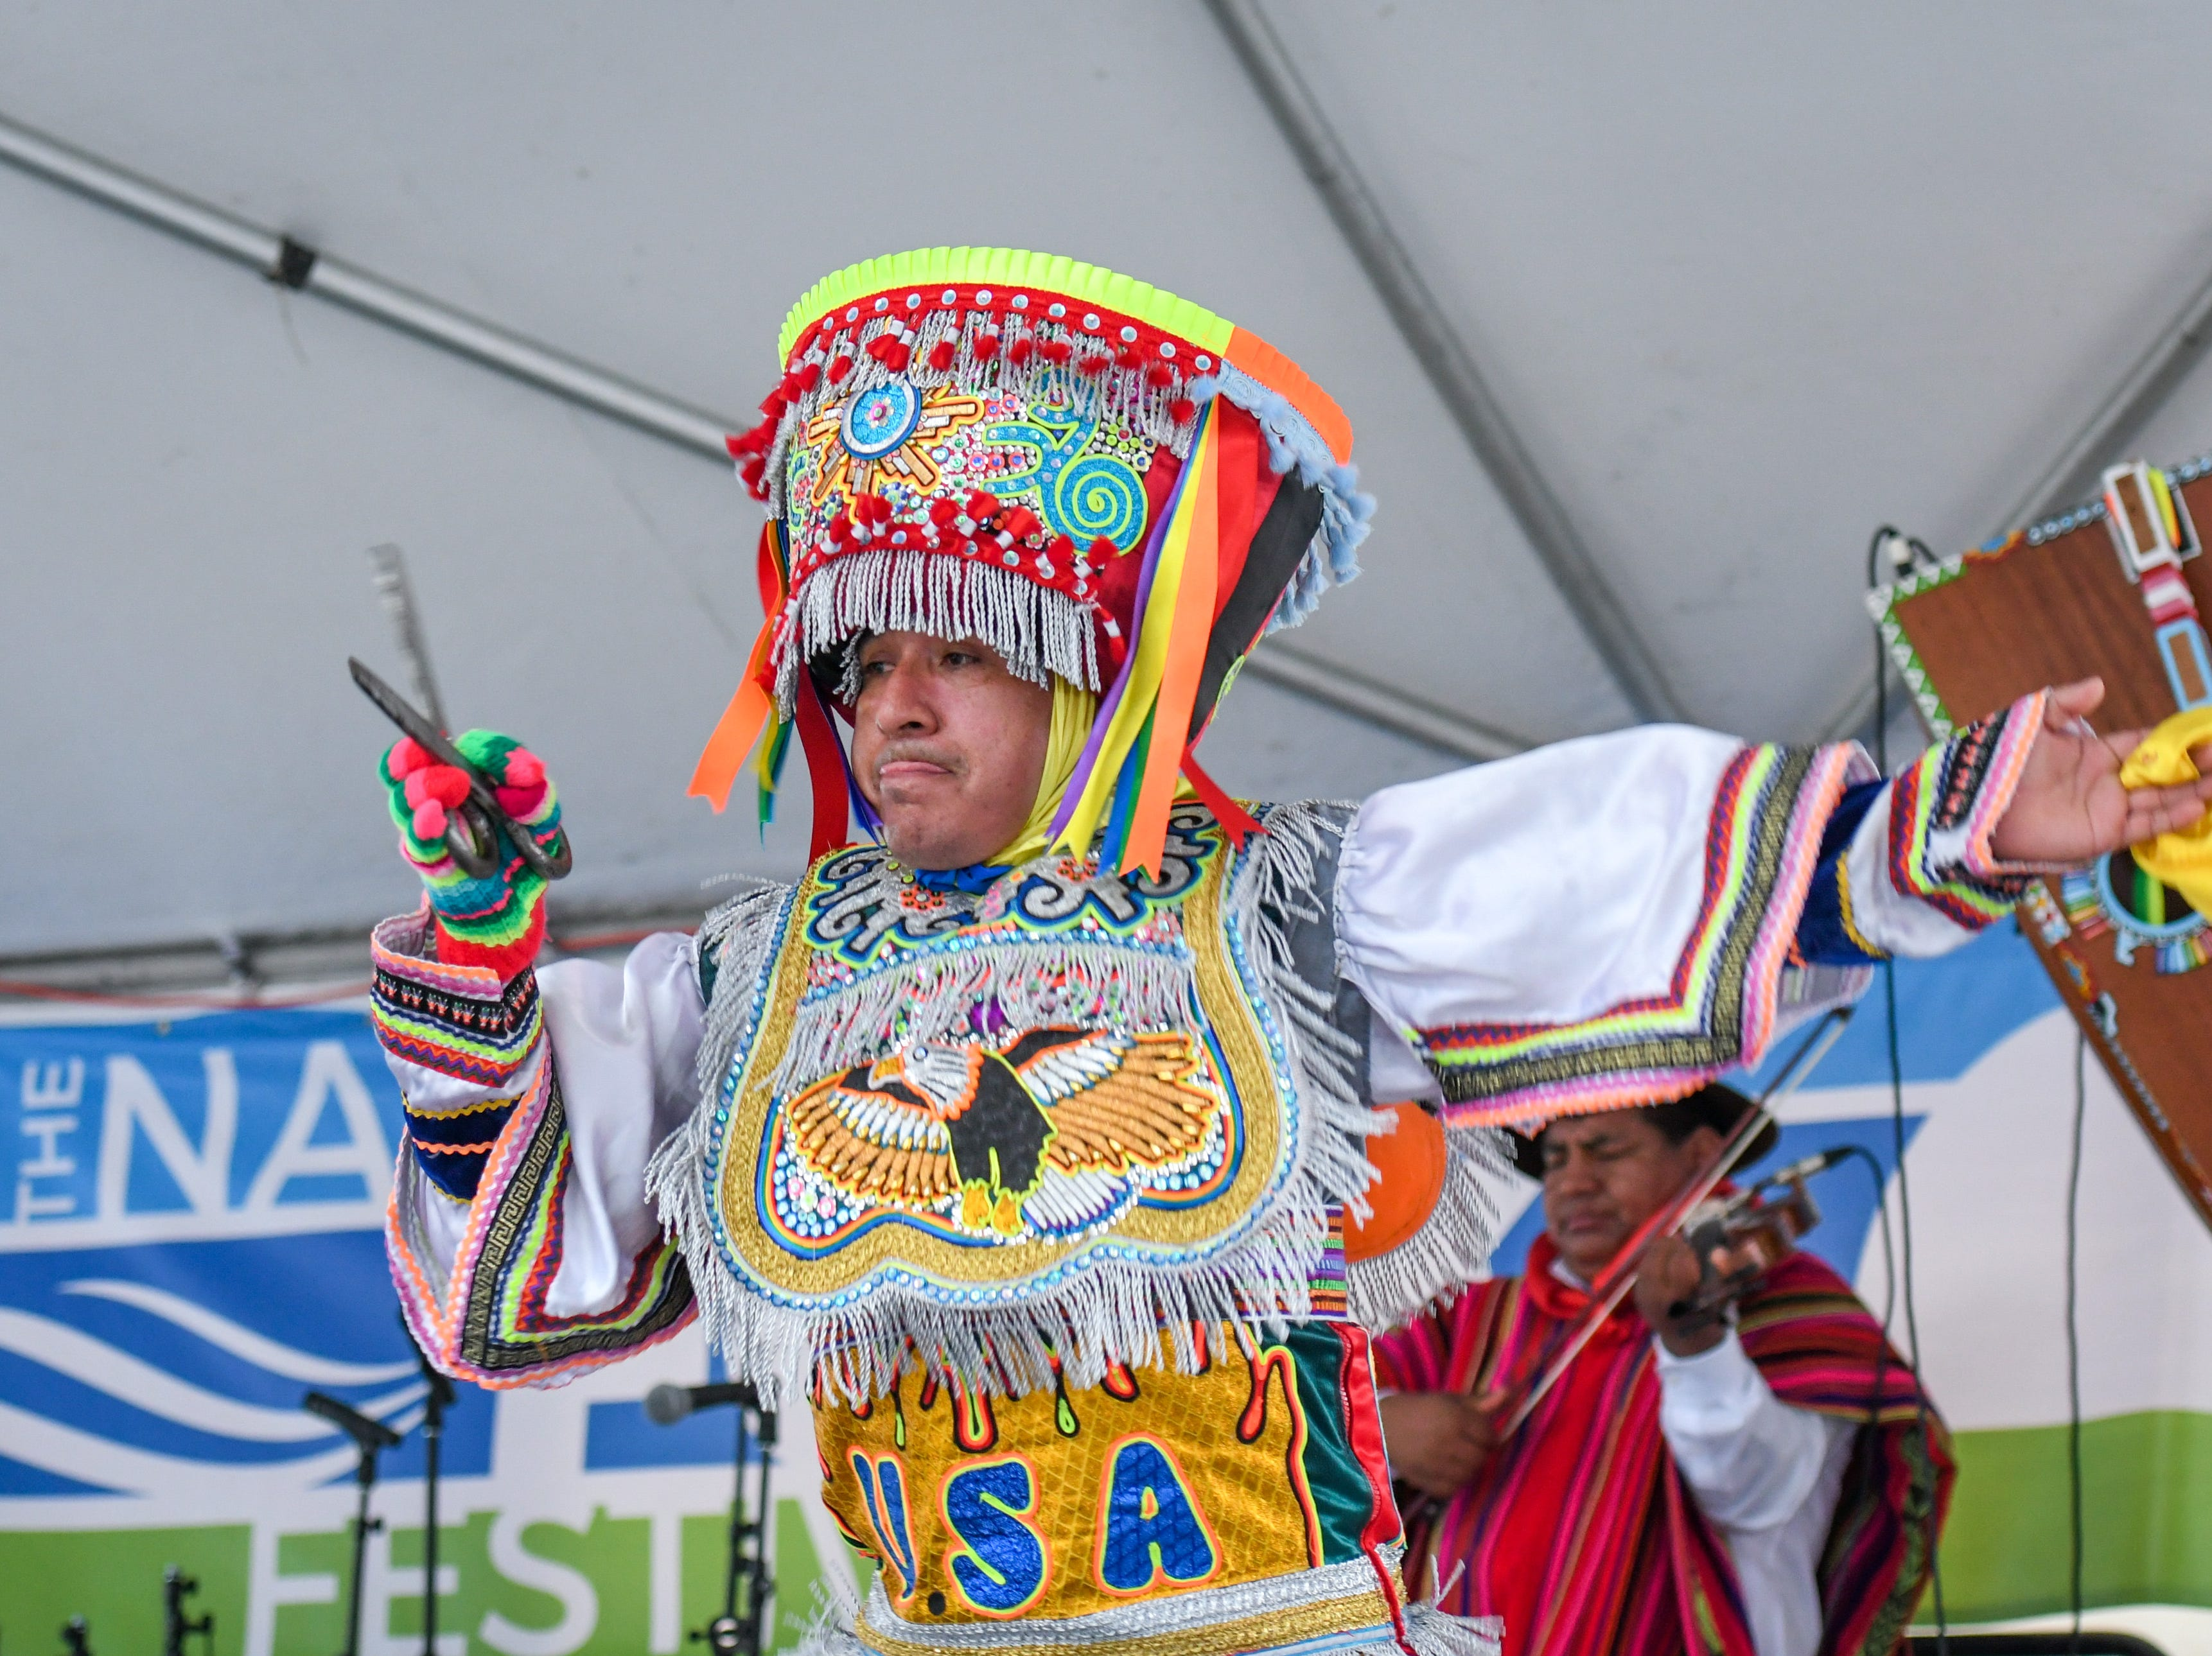 The Chankas of Peru perform an Andean scissors dance at the National Folk Festival in Salisbury on Saturday, Sept. 8.